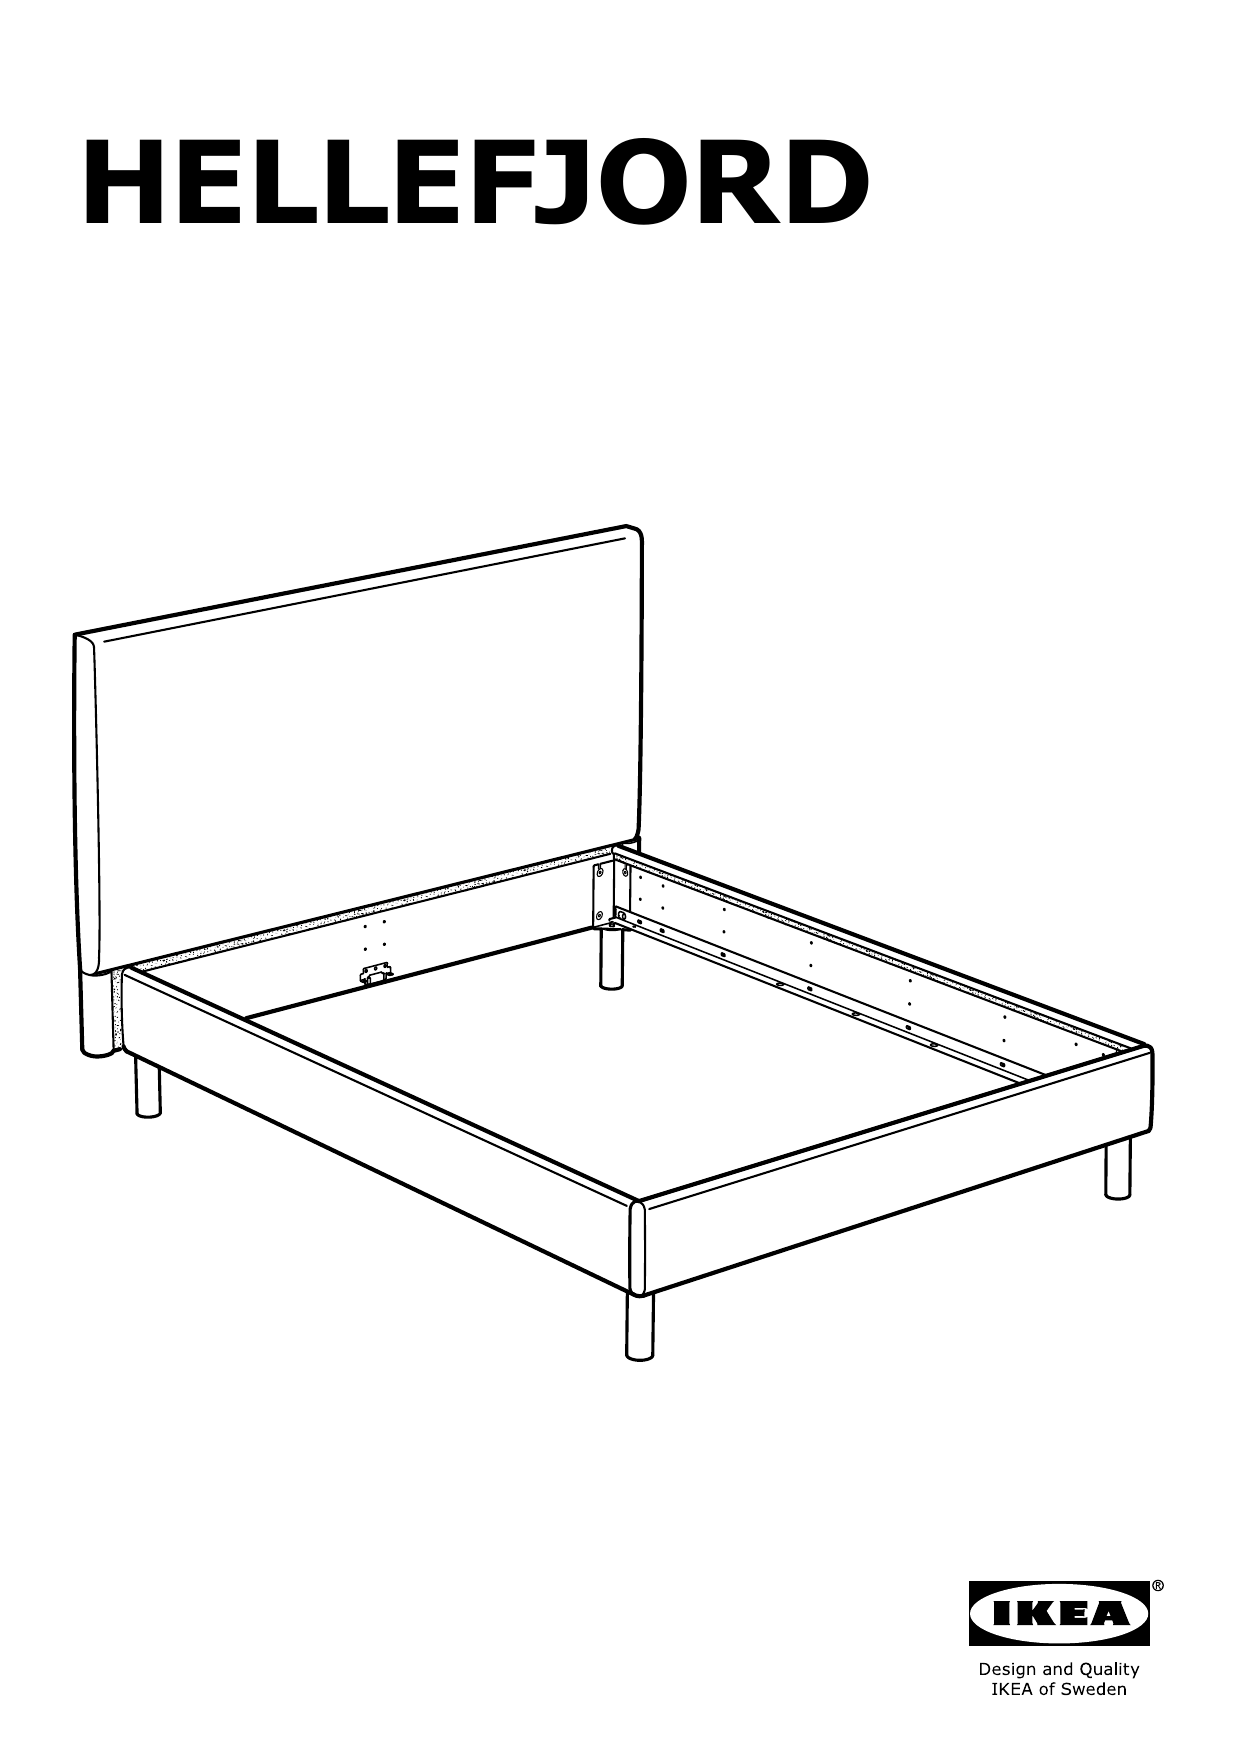 IKEA SKULSFJORD Bed frame Assembly Instruction